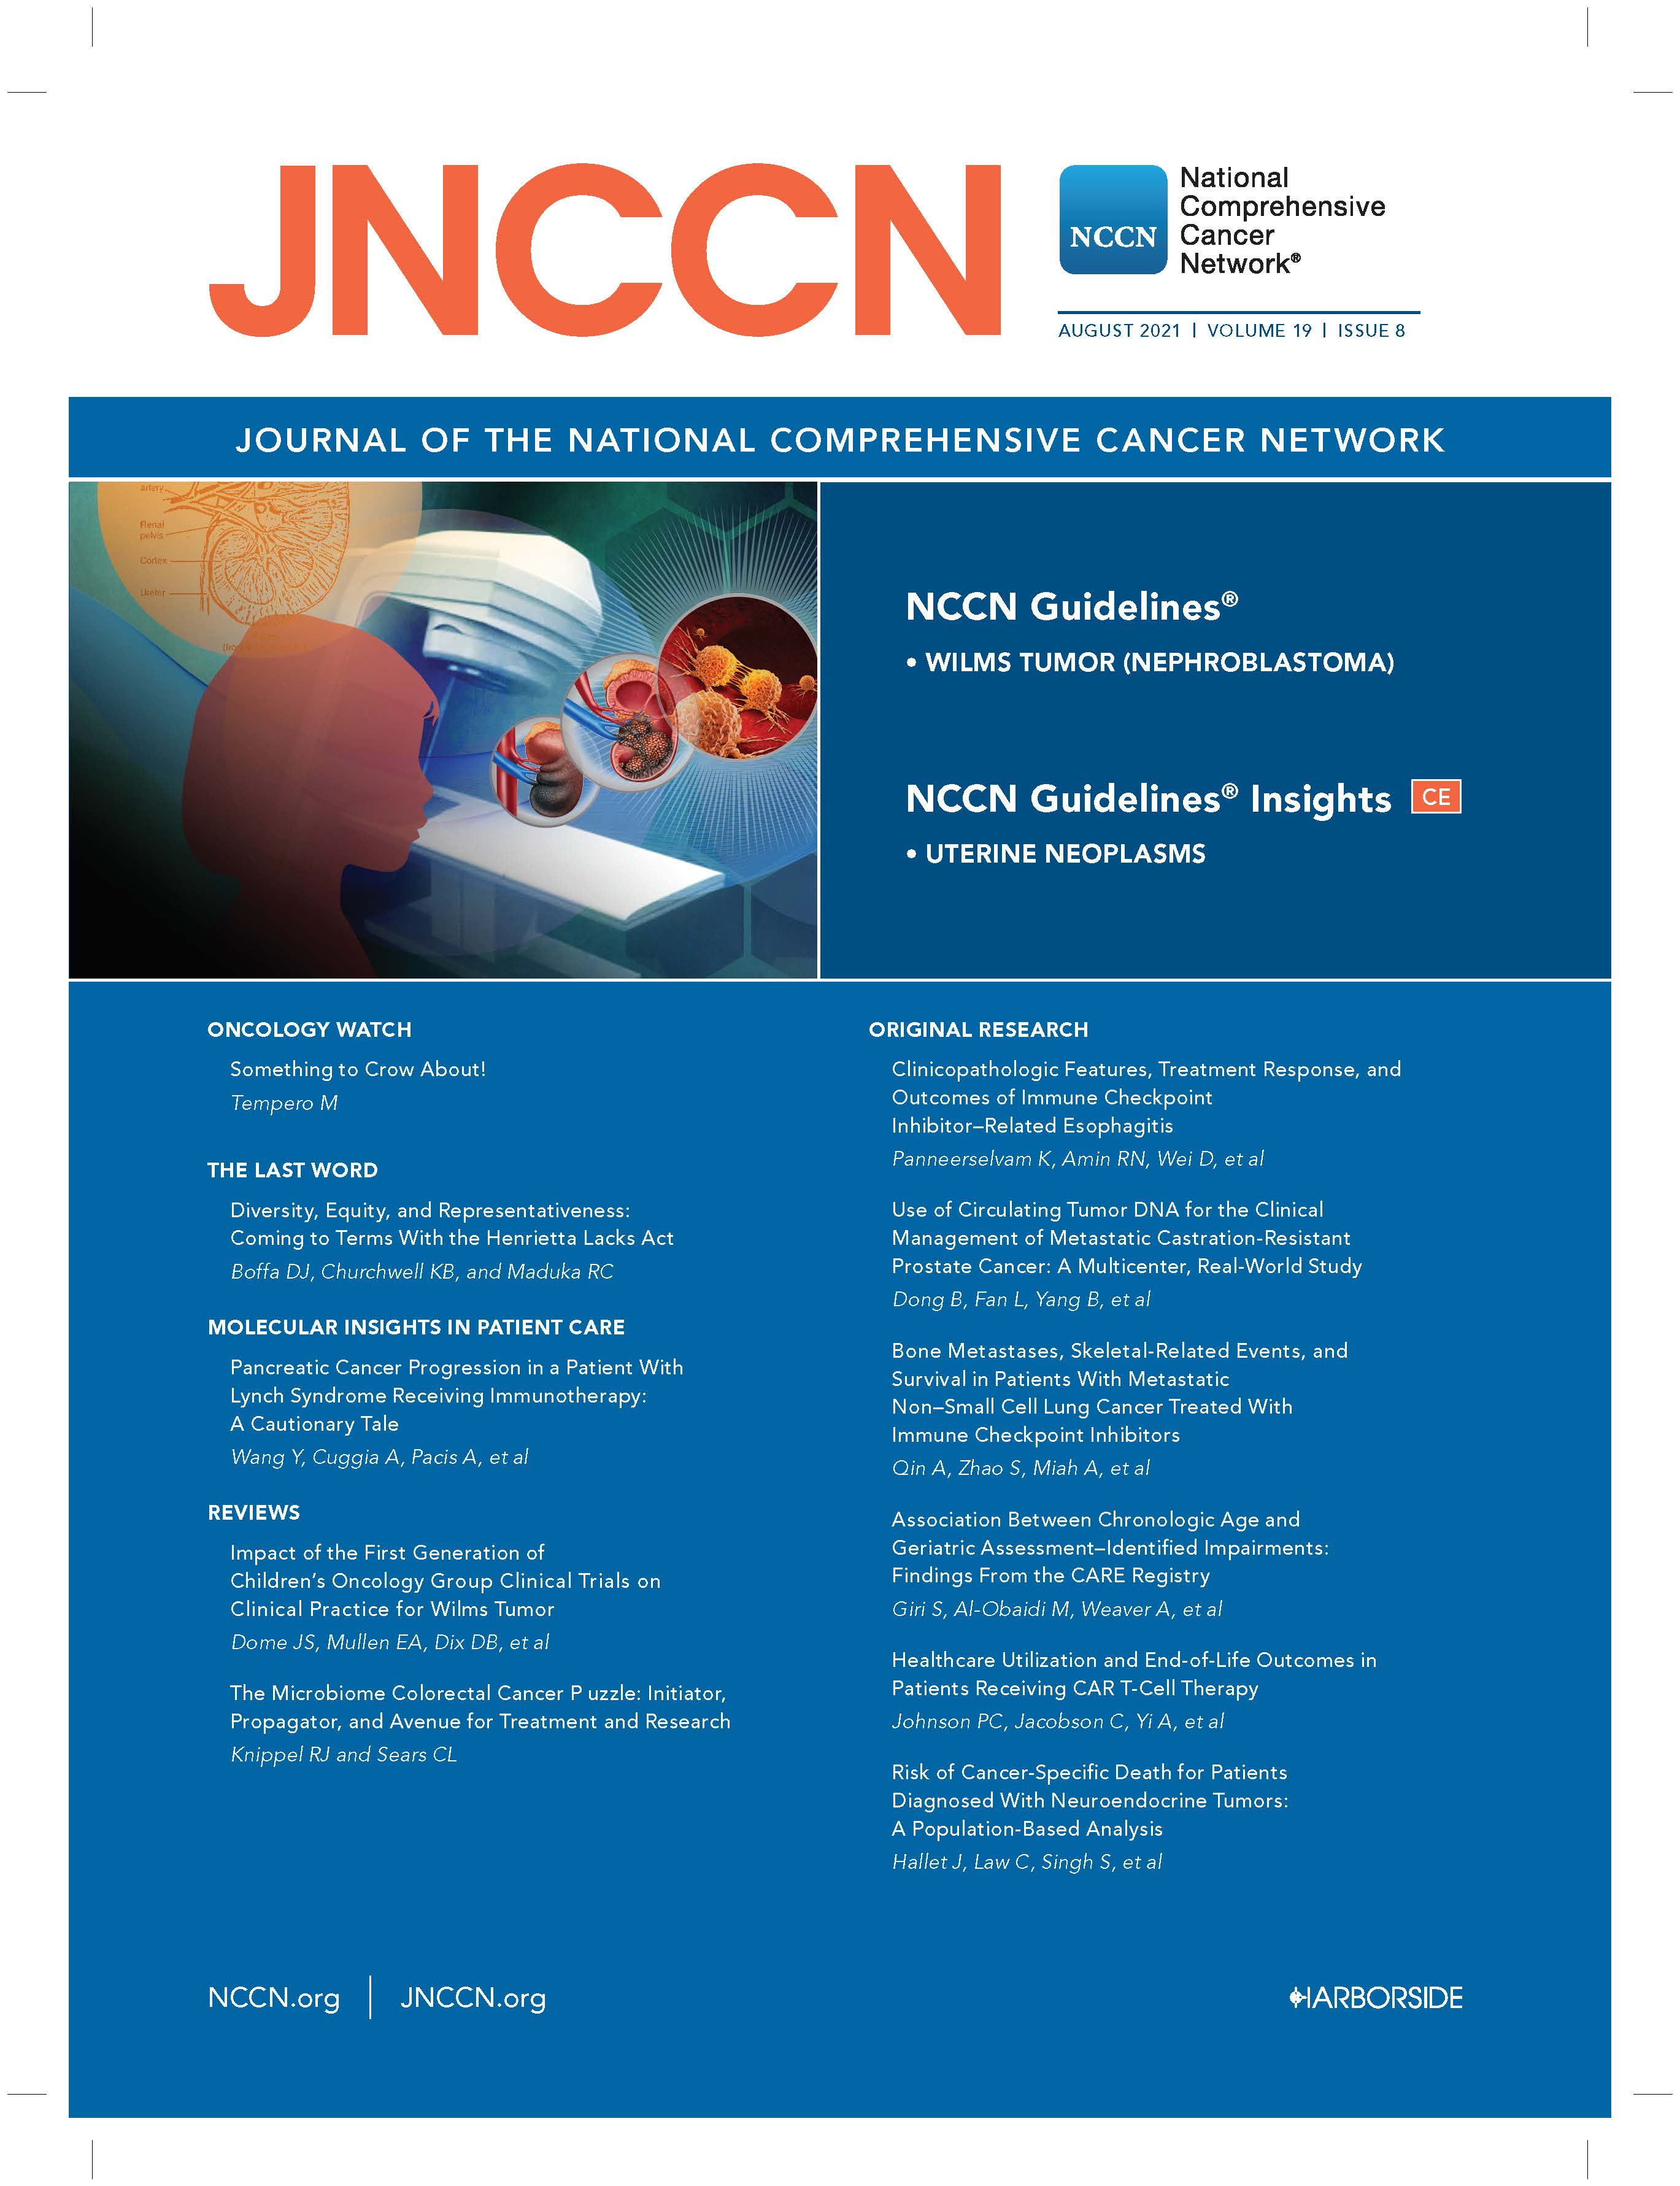 JNCCN Cover, August 2021